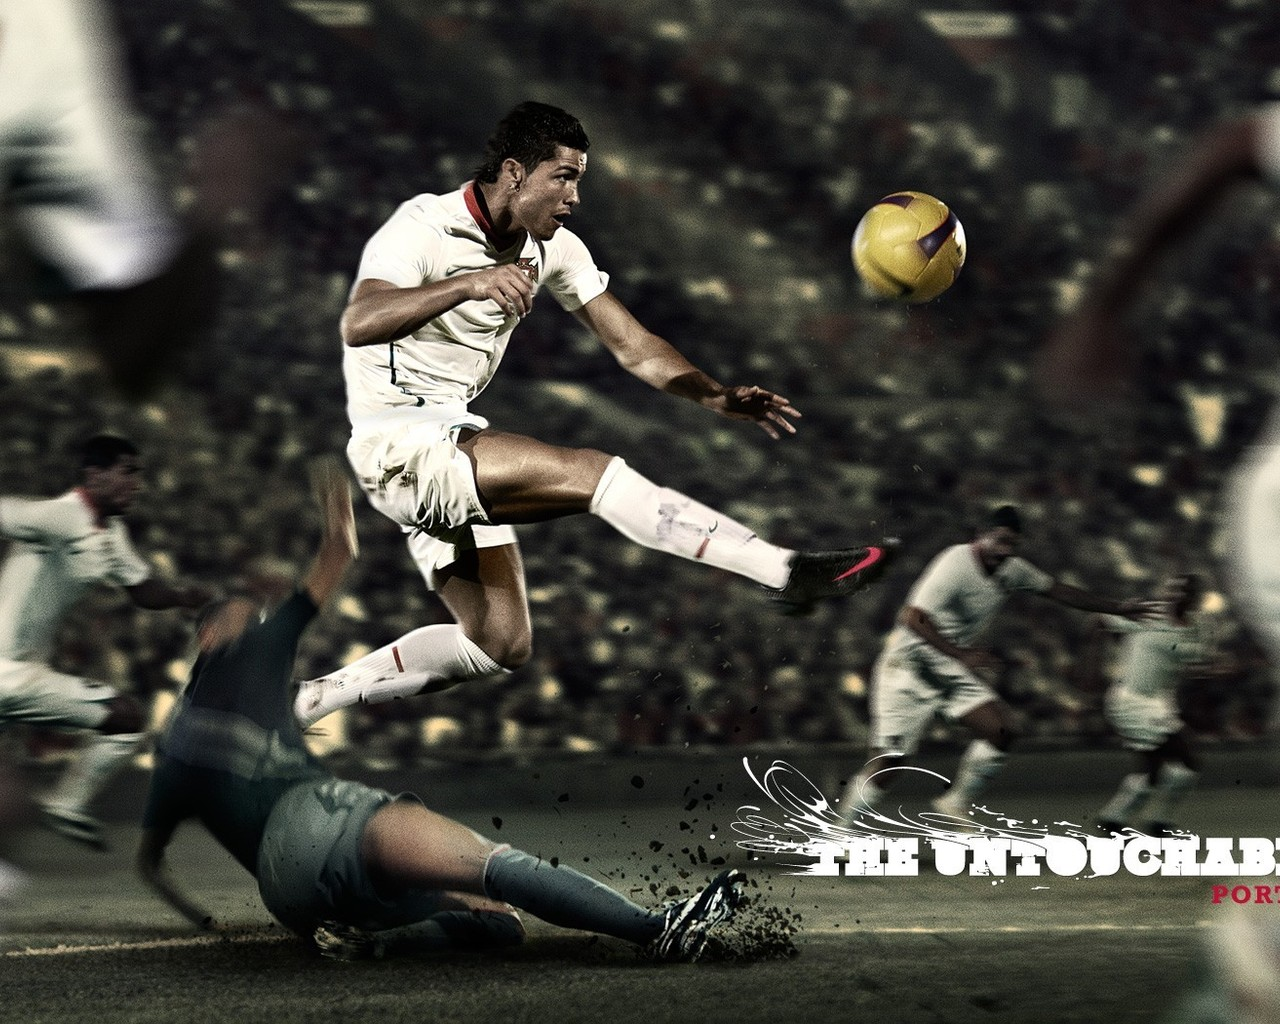 Most Inspiring Wallpaper High Quality Football - HD-Football-Wallpapers-1080p-050  Perfect Image Reference_639795.jpg